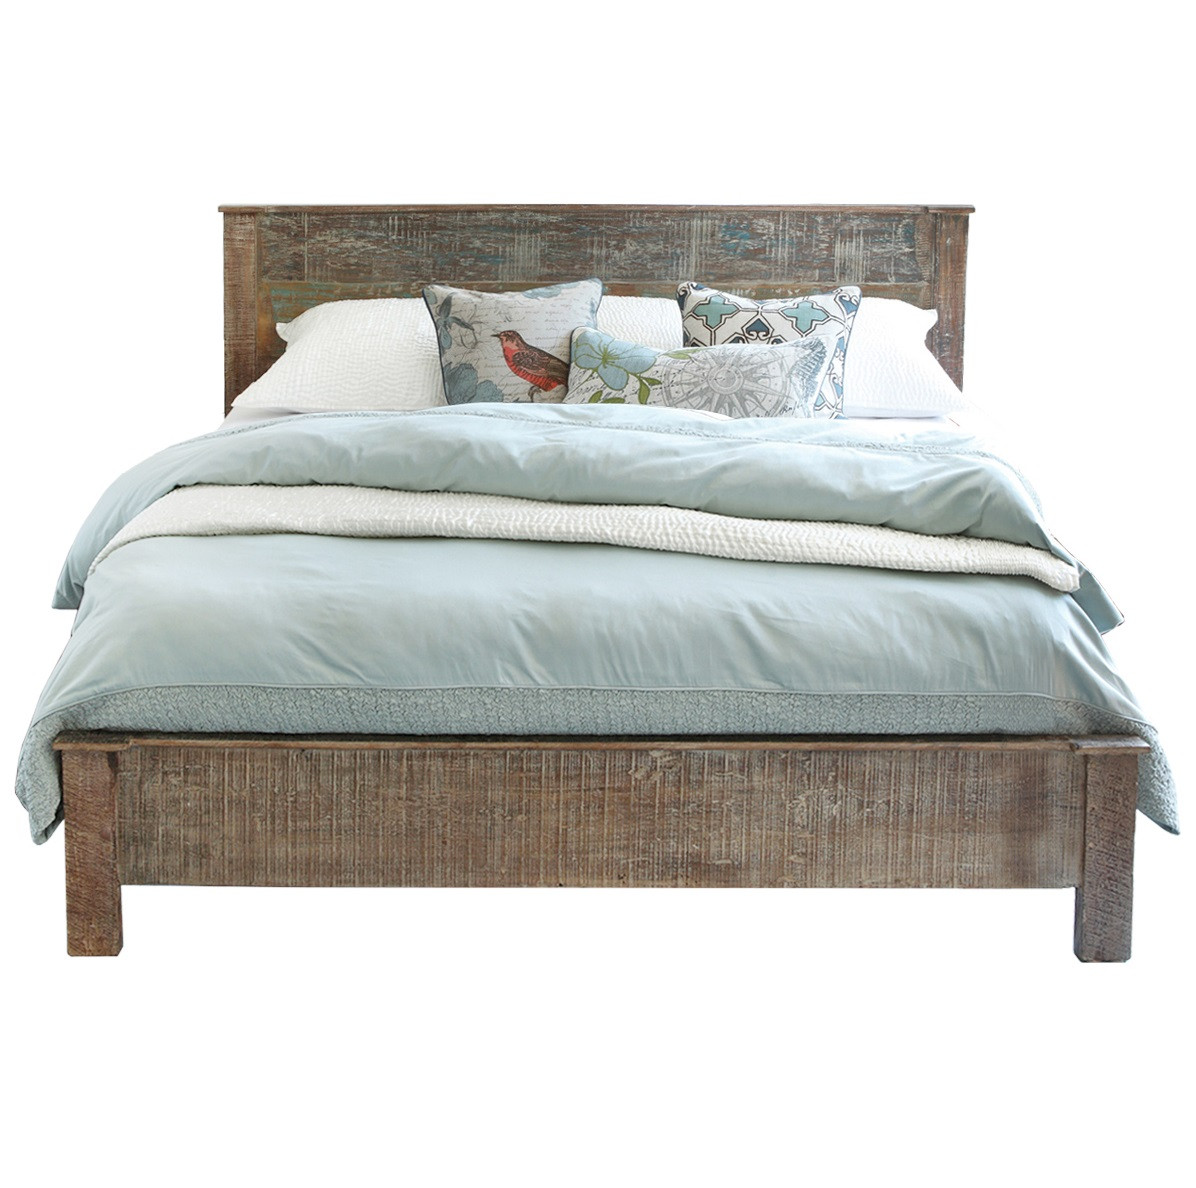 Hampton rustic teak wood king bed frame zin home Rustic bed frames